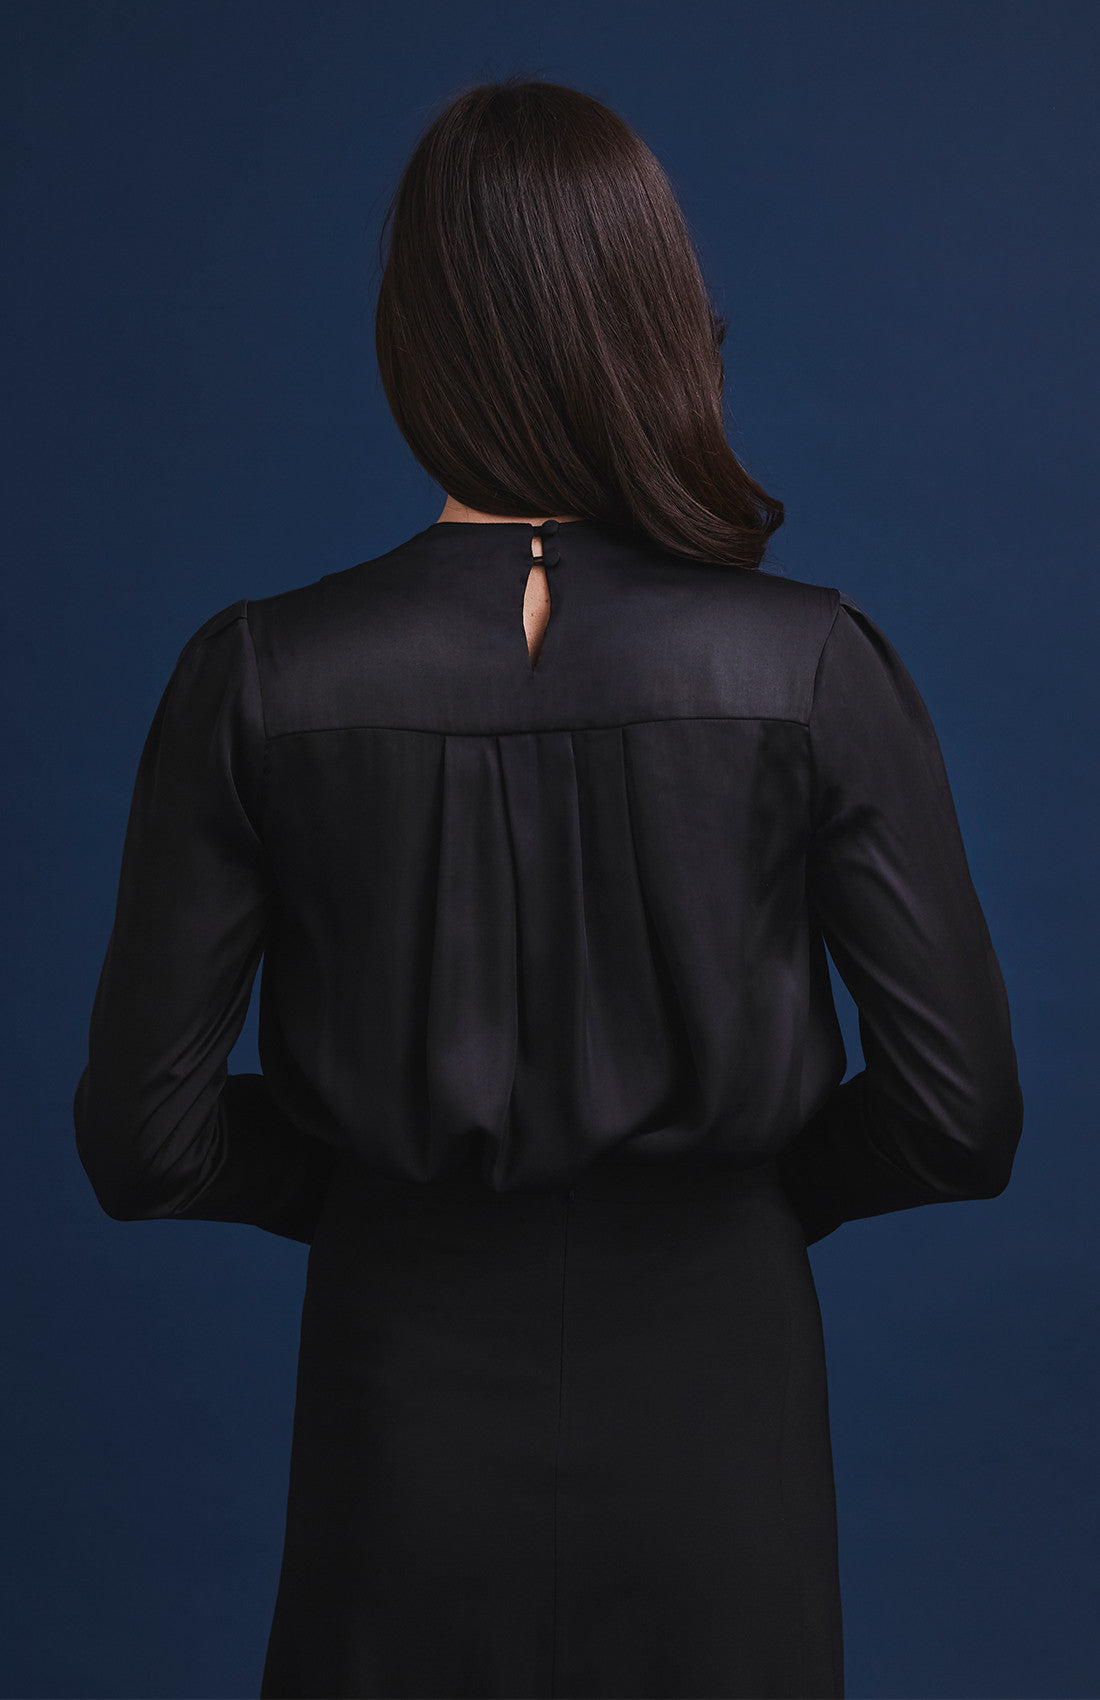 V-neck satin drape blouse with double cuffs for work black